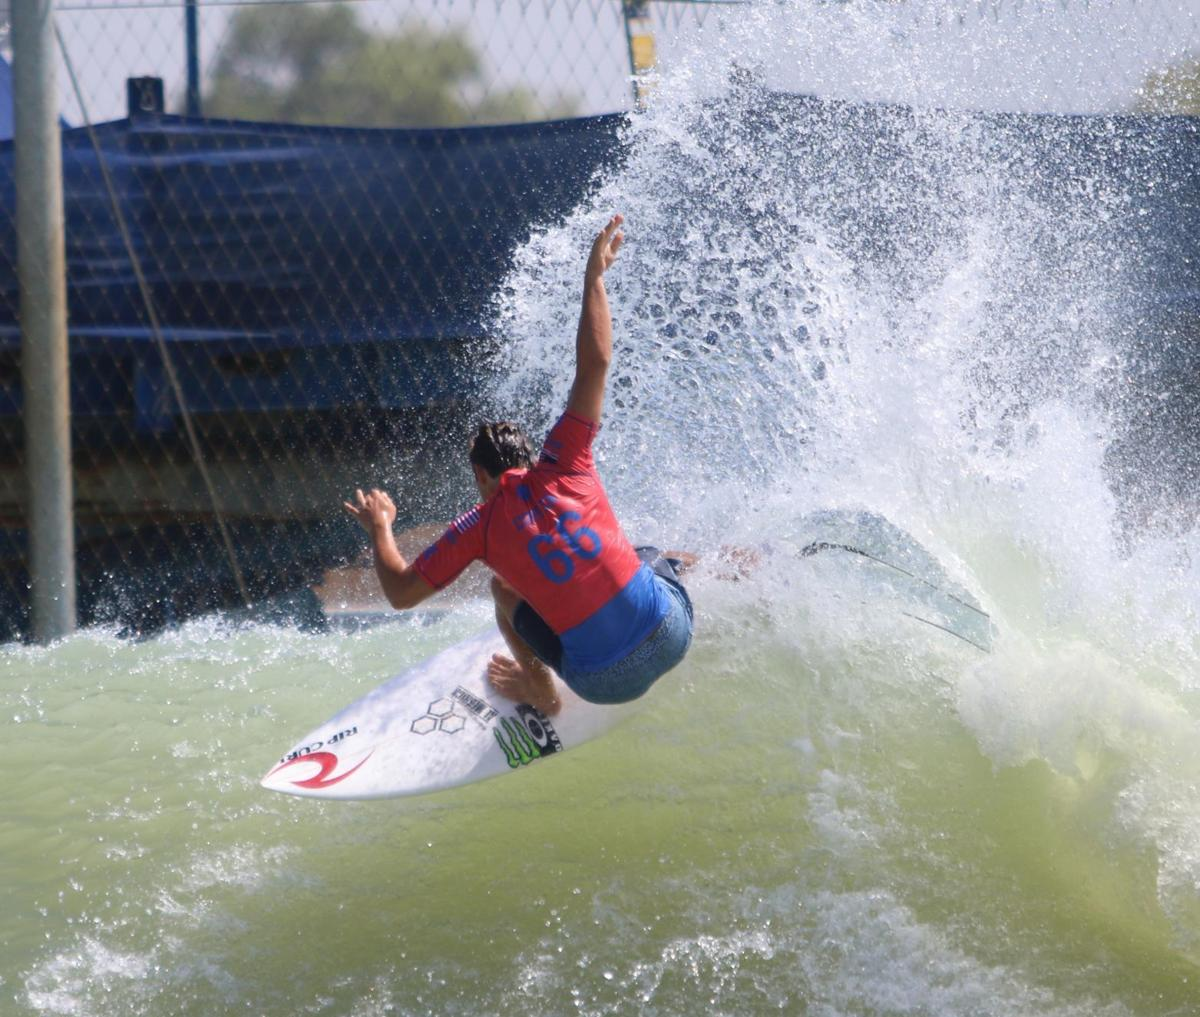 Fans take in first day at Surf Ranch